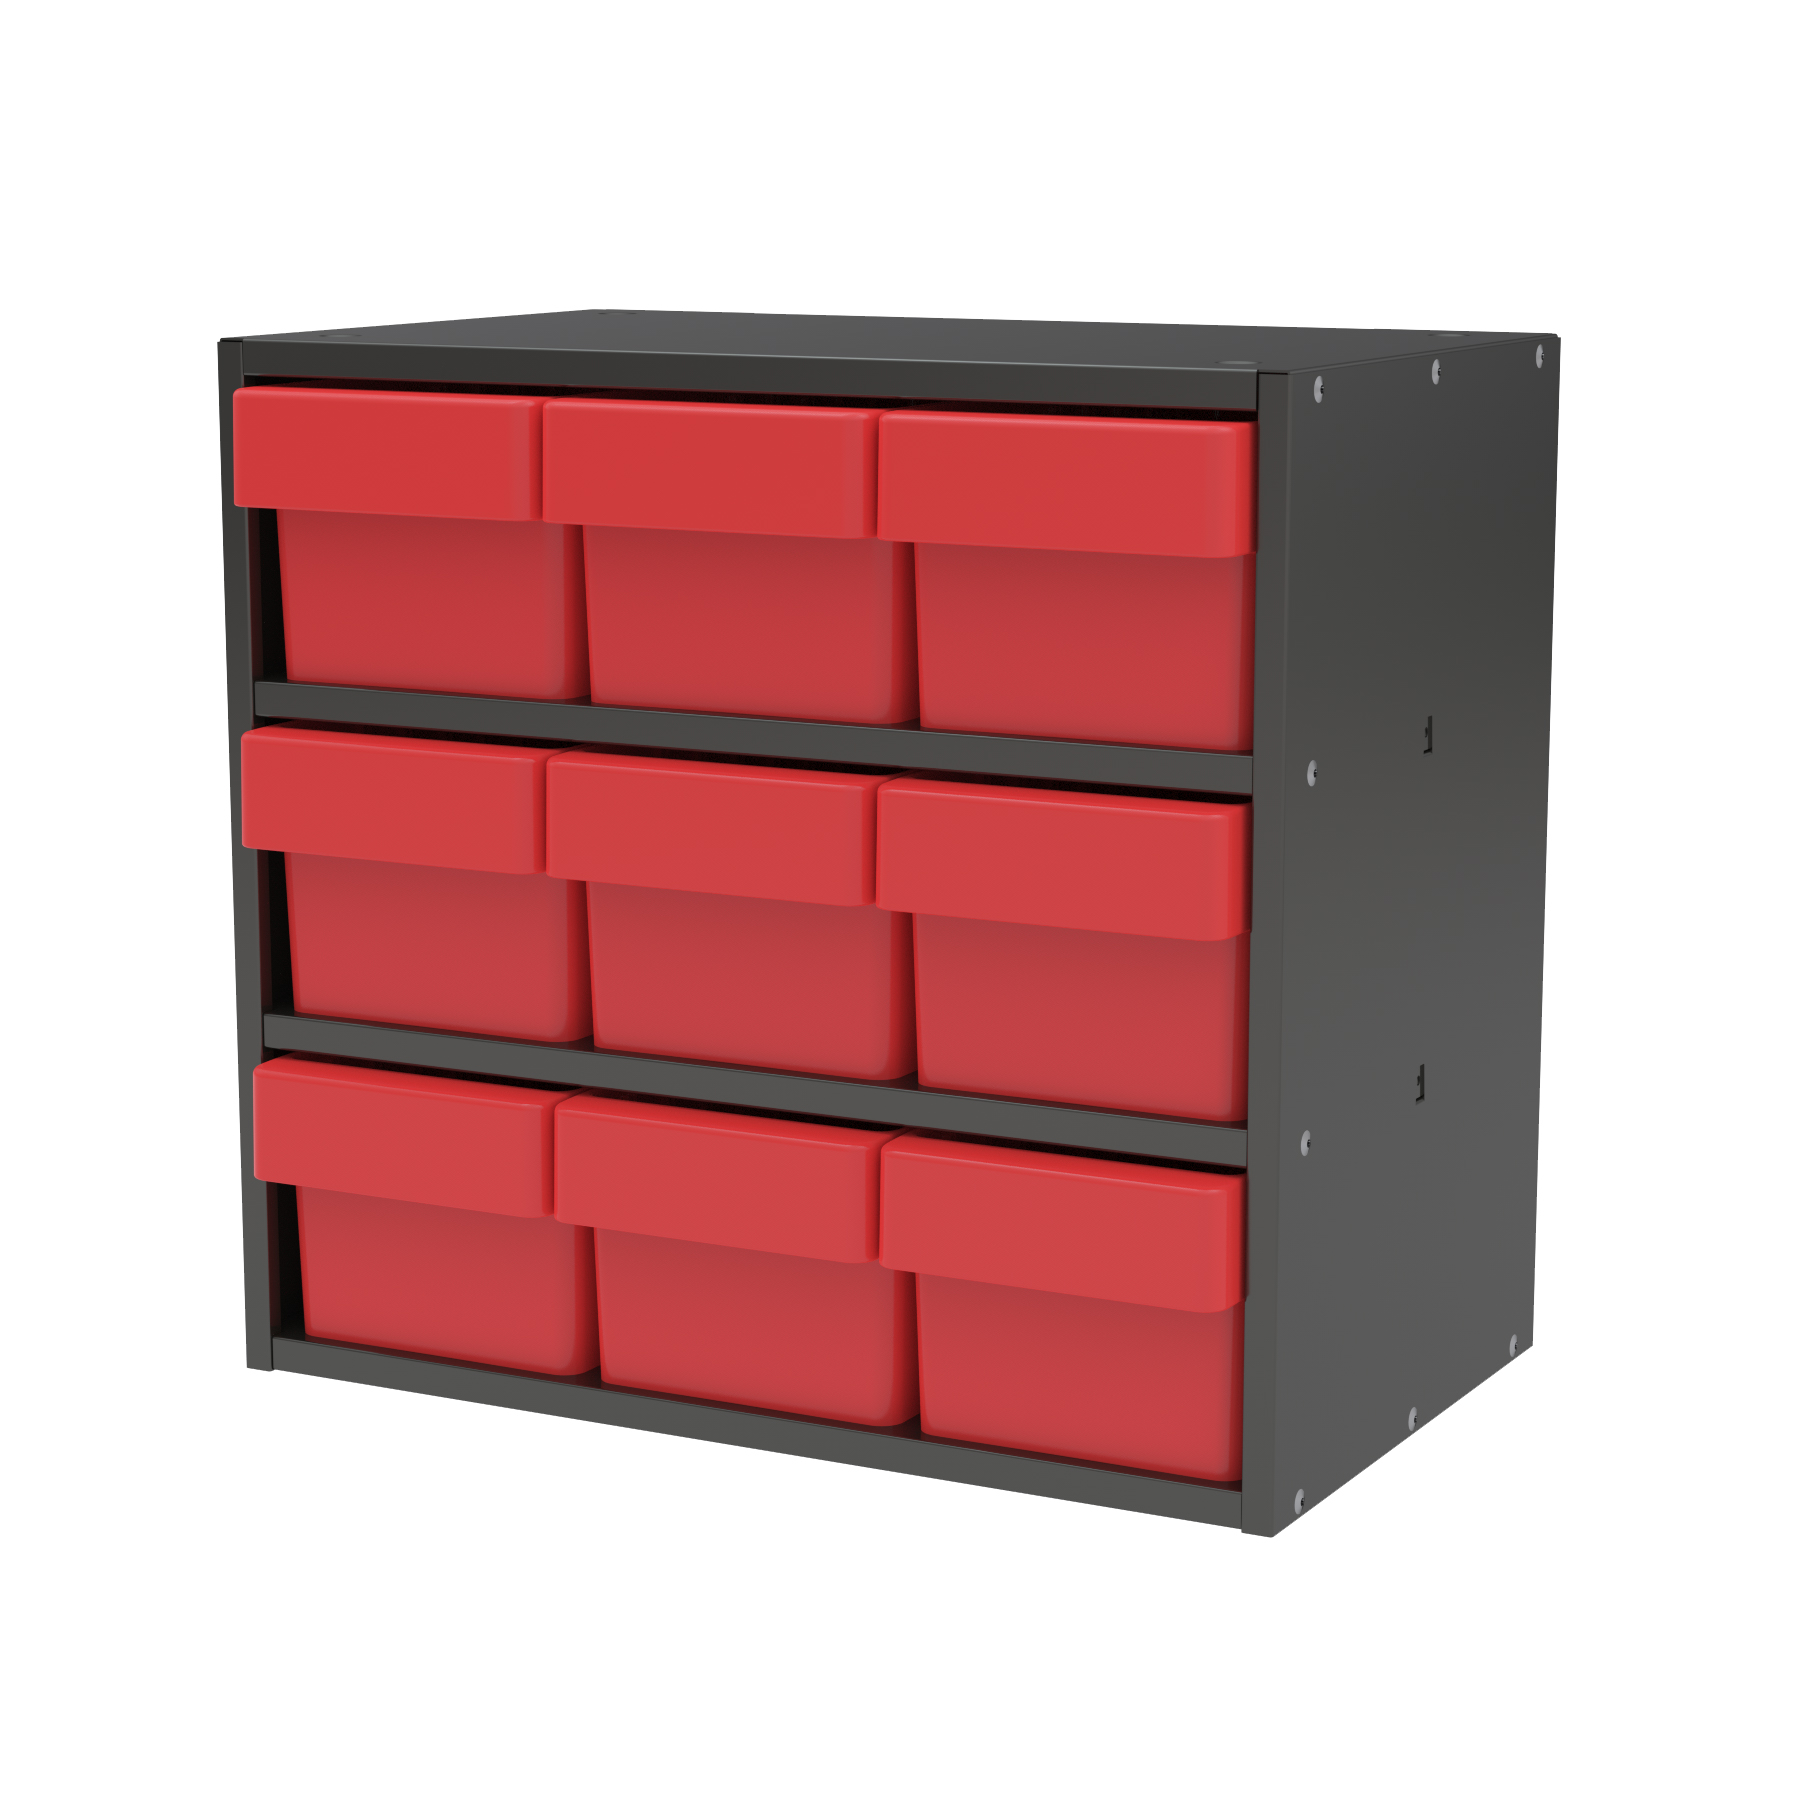 Item DISCONTINUED by Manufacturer.  Modular Cabinet, 18x11x16, 9 Drawers, Gray/Red (AD1811C62RED).  This item sold in carton quantities of 1.